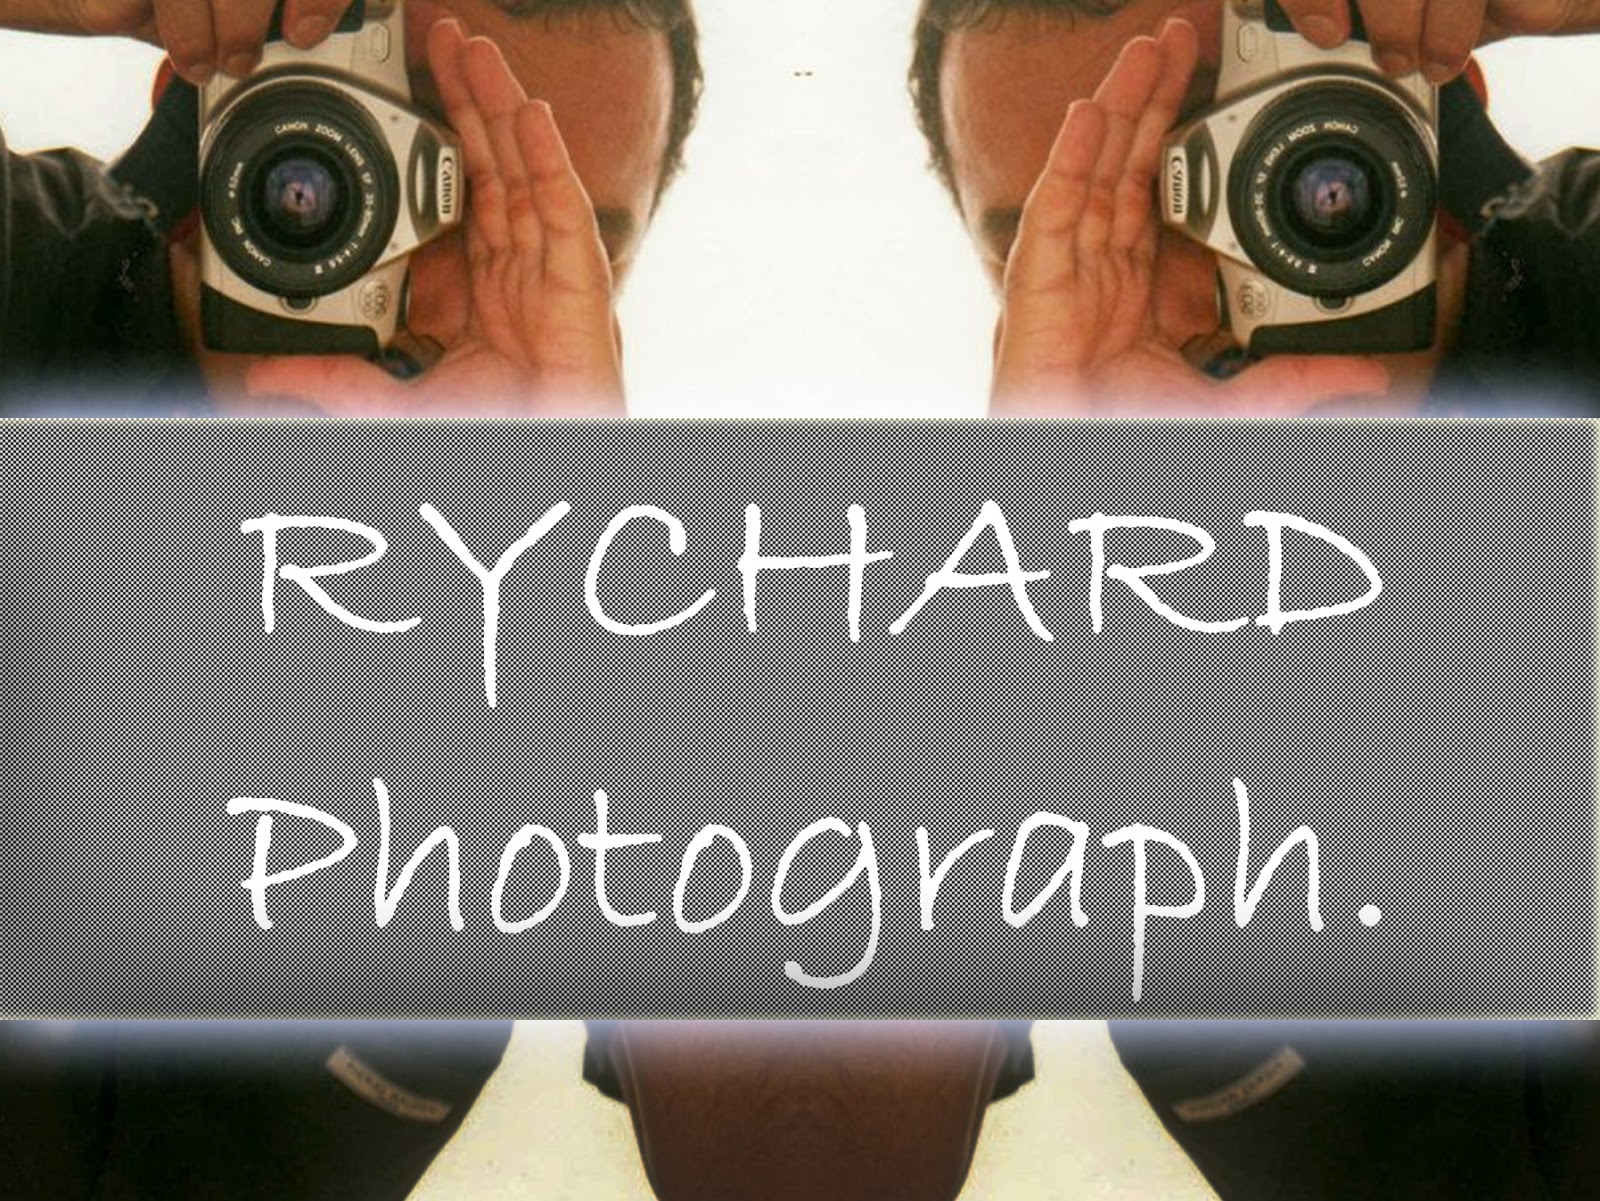 Richard Photograph